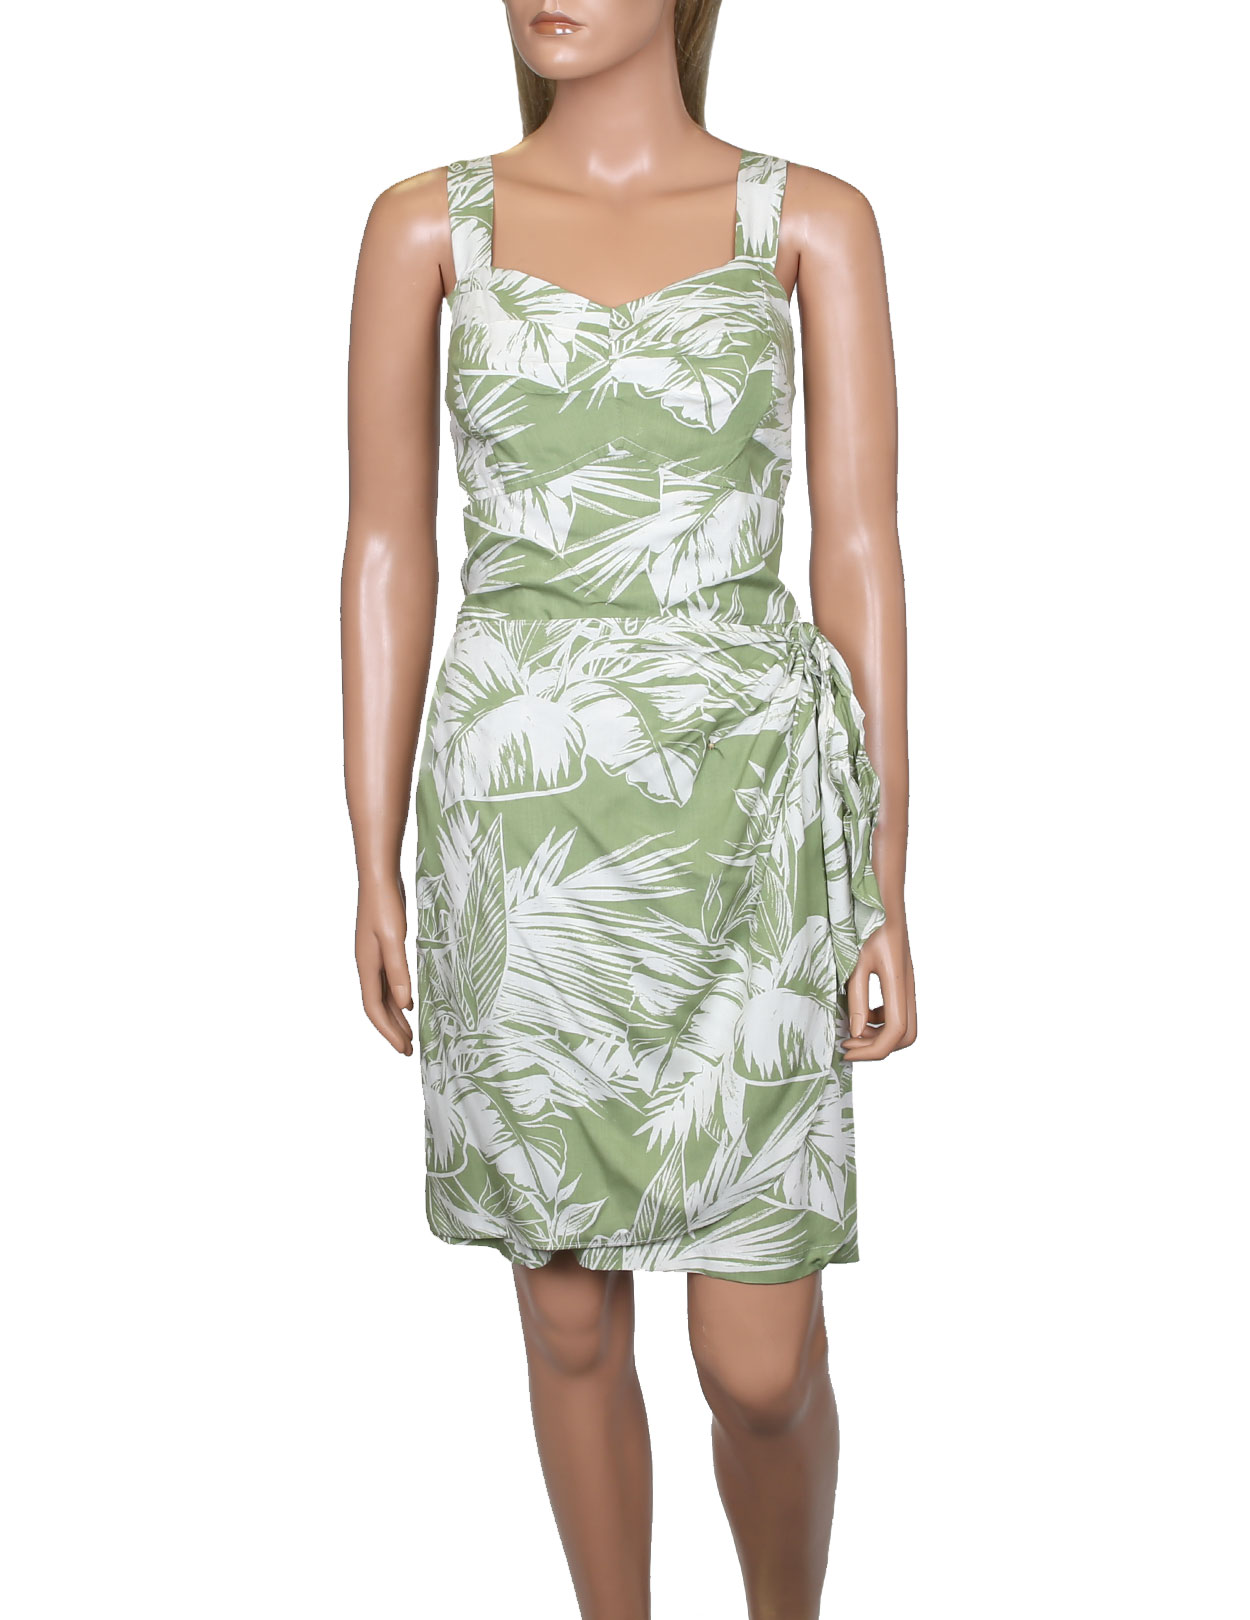 56108266f2 Tropical Jungle Short Sarong Wrap Hawaiian Dress: Shaka Time Hawaii  Clothing Store